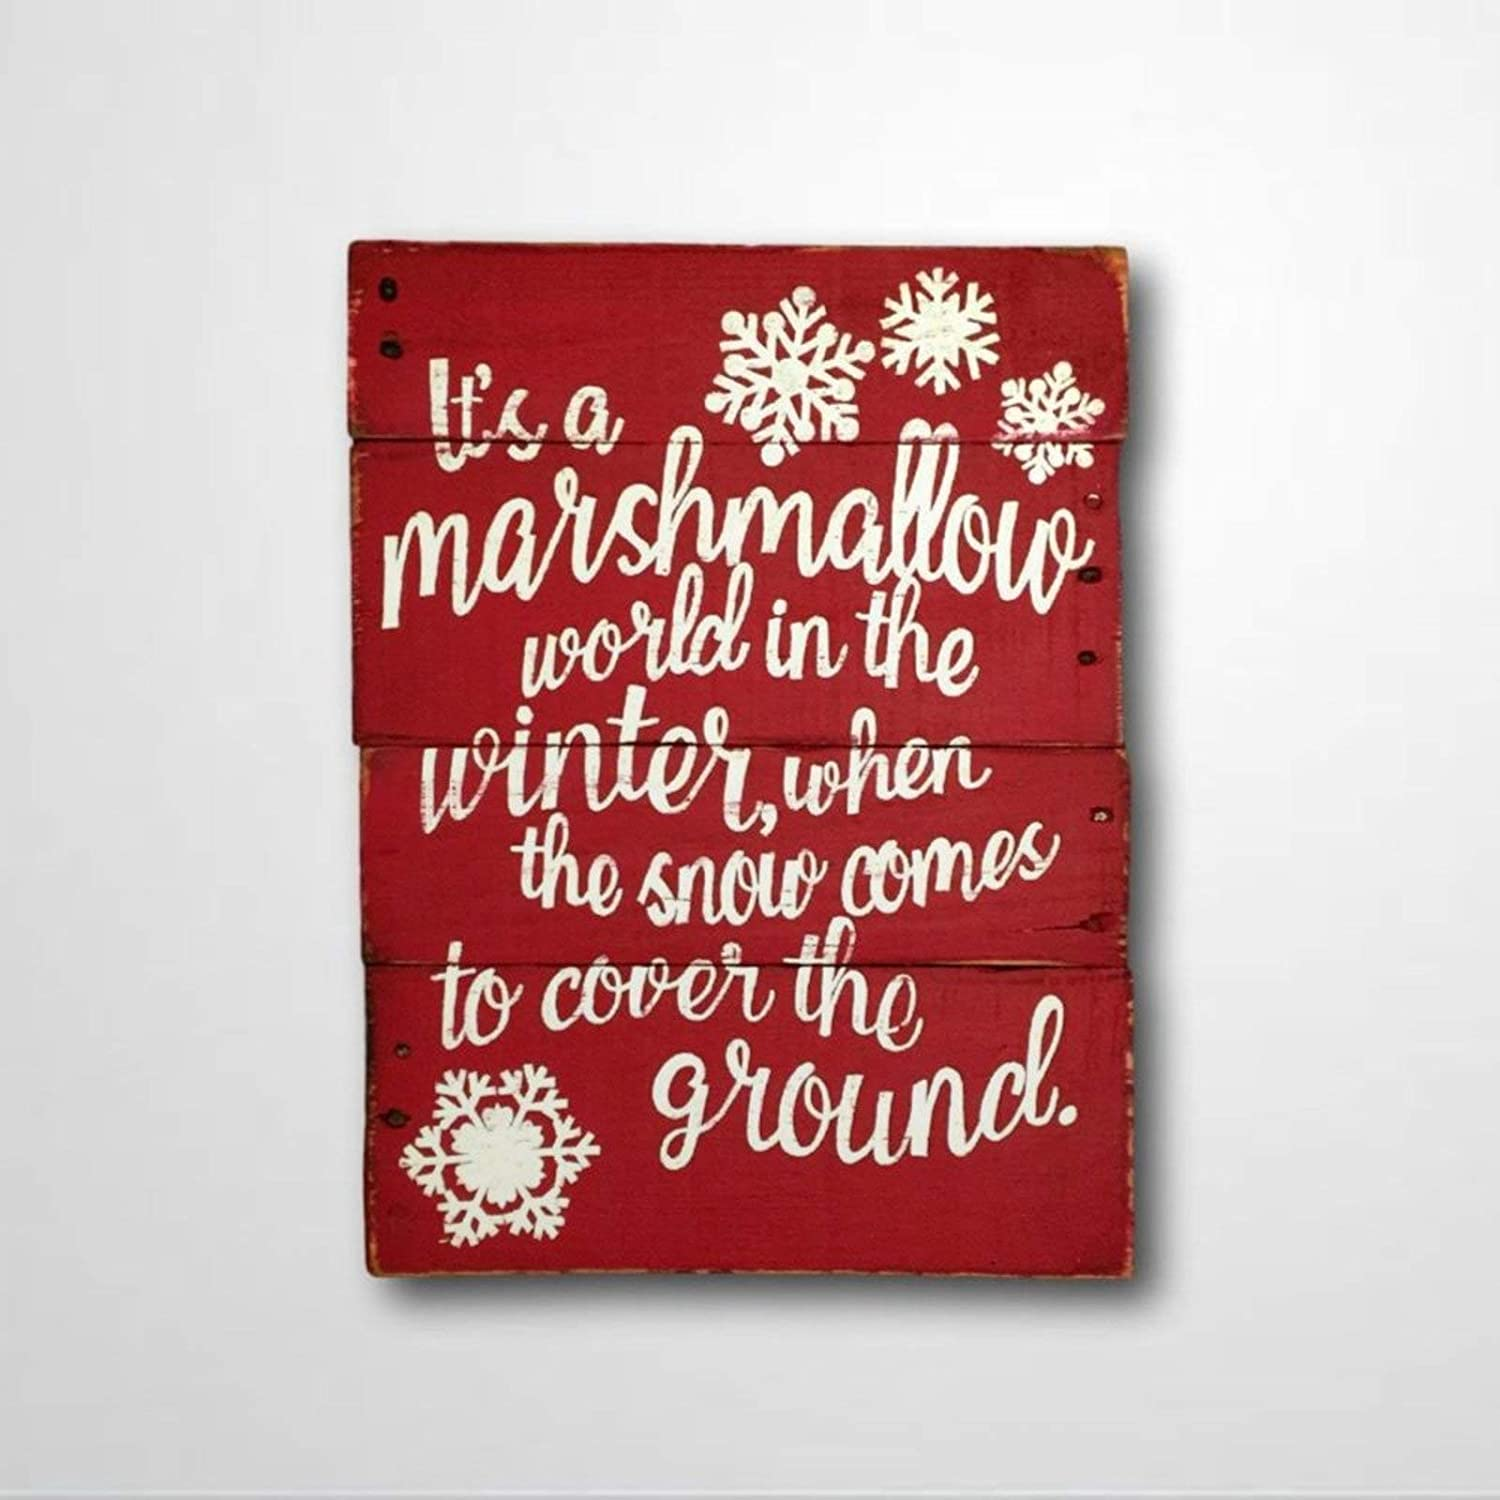 DONL9BAUER Marshmallow World in The Winter Sign Christmas Wood Sign Christmas Decor Christmas Song Lyrics Sign Mantel Decor Wall Hanging Home Decor Indoor Outdoor